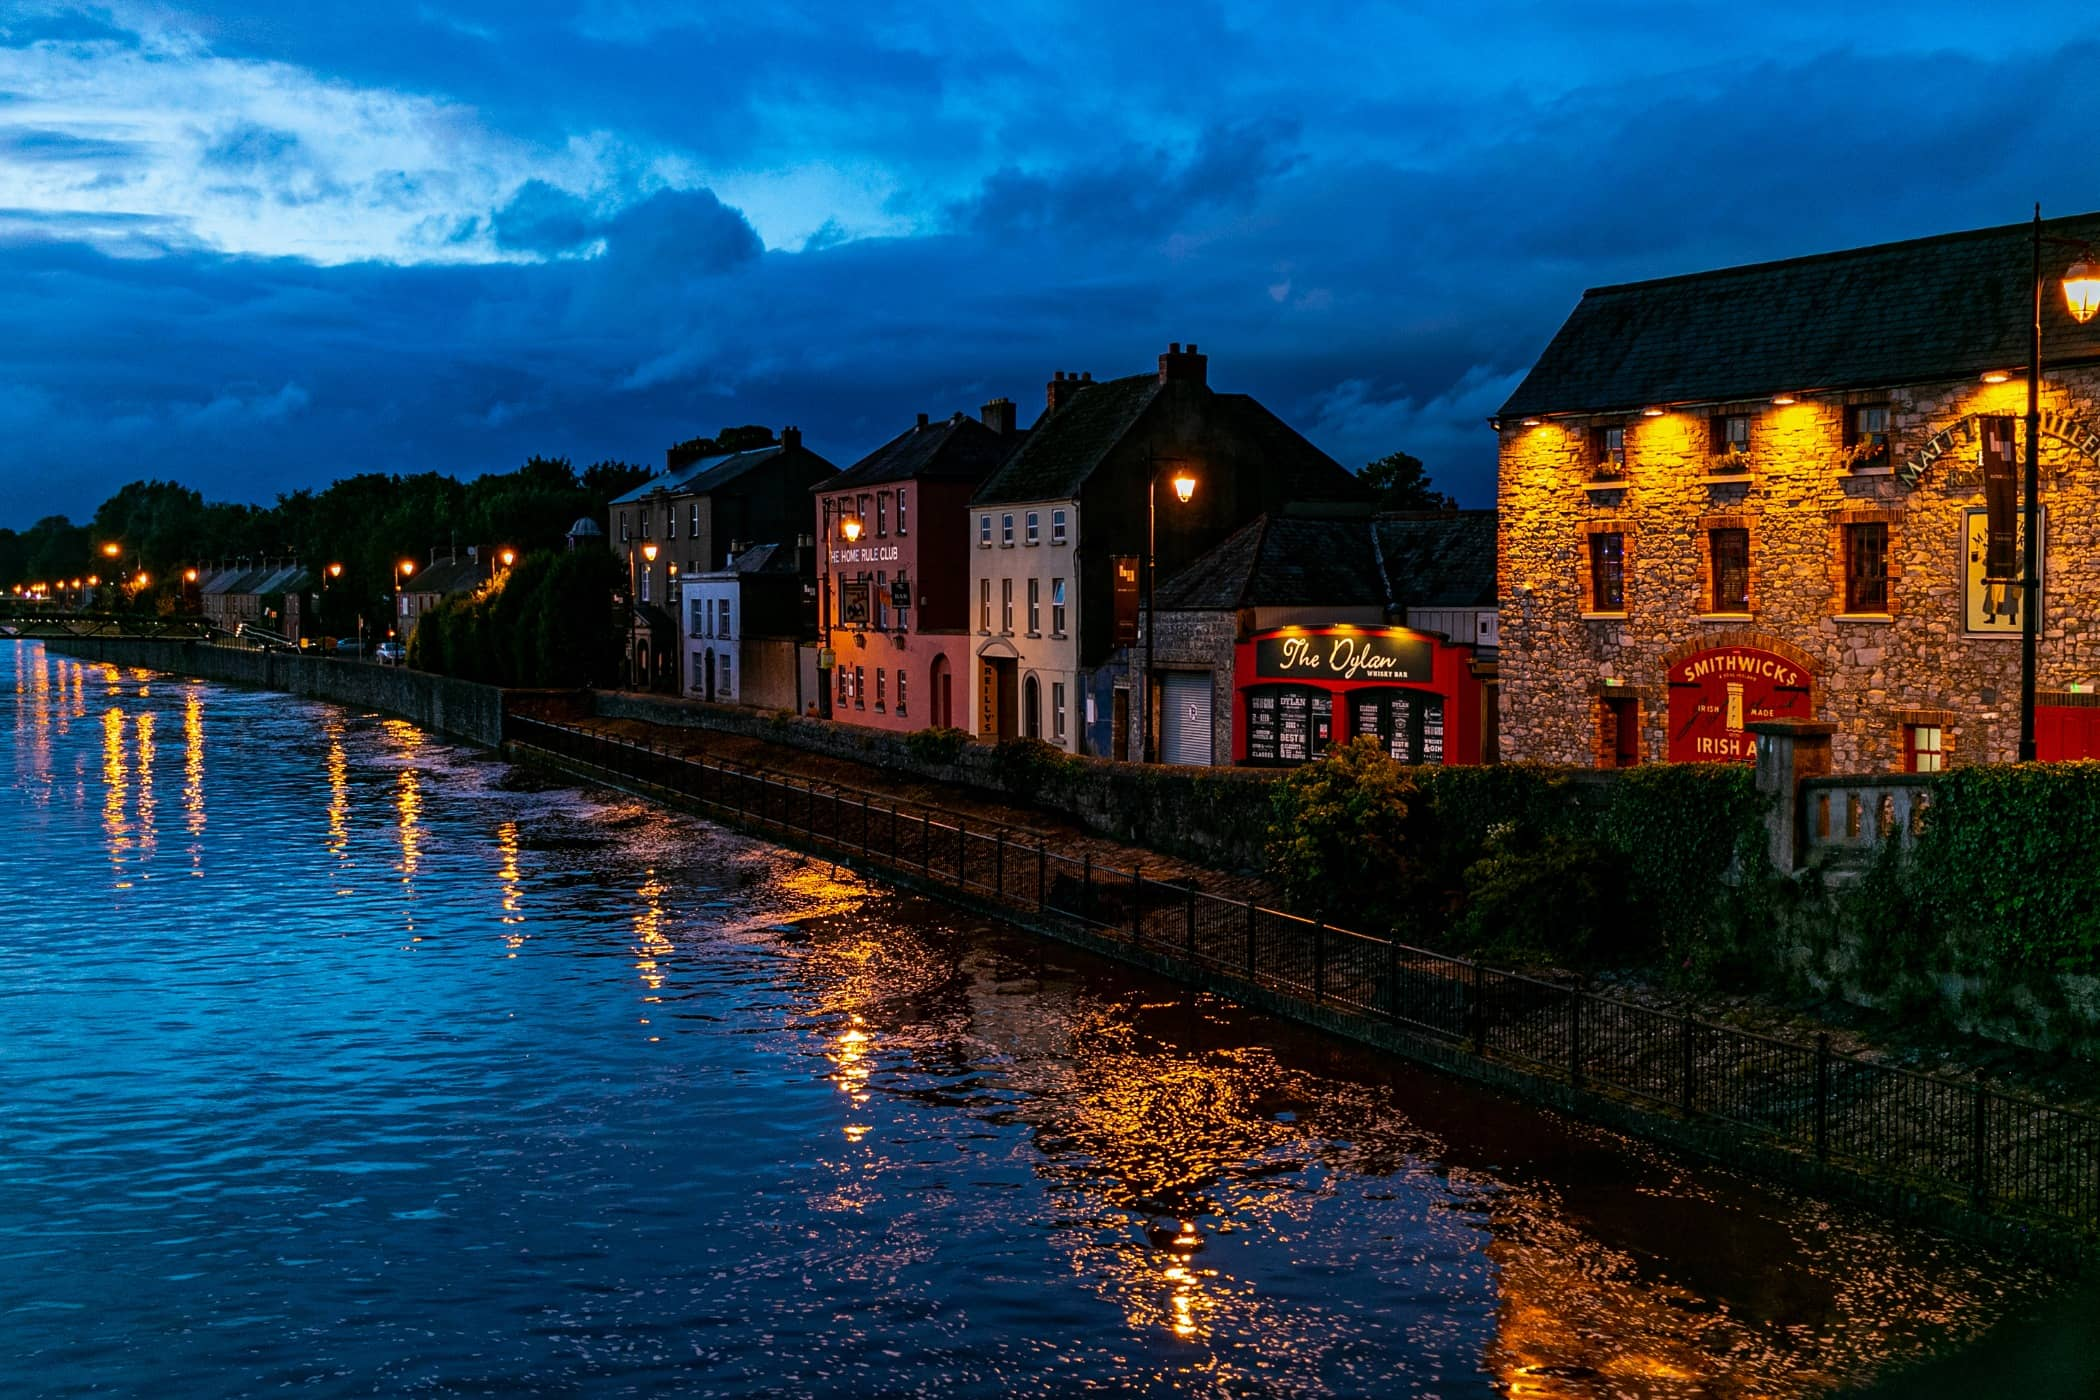 Light, Town, Lighting, Evening, Waterway, Blue, Night, Sky, Water, Reflection